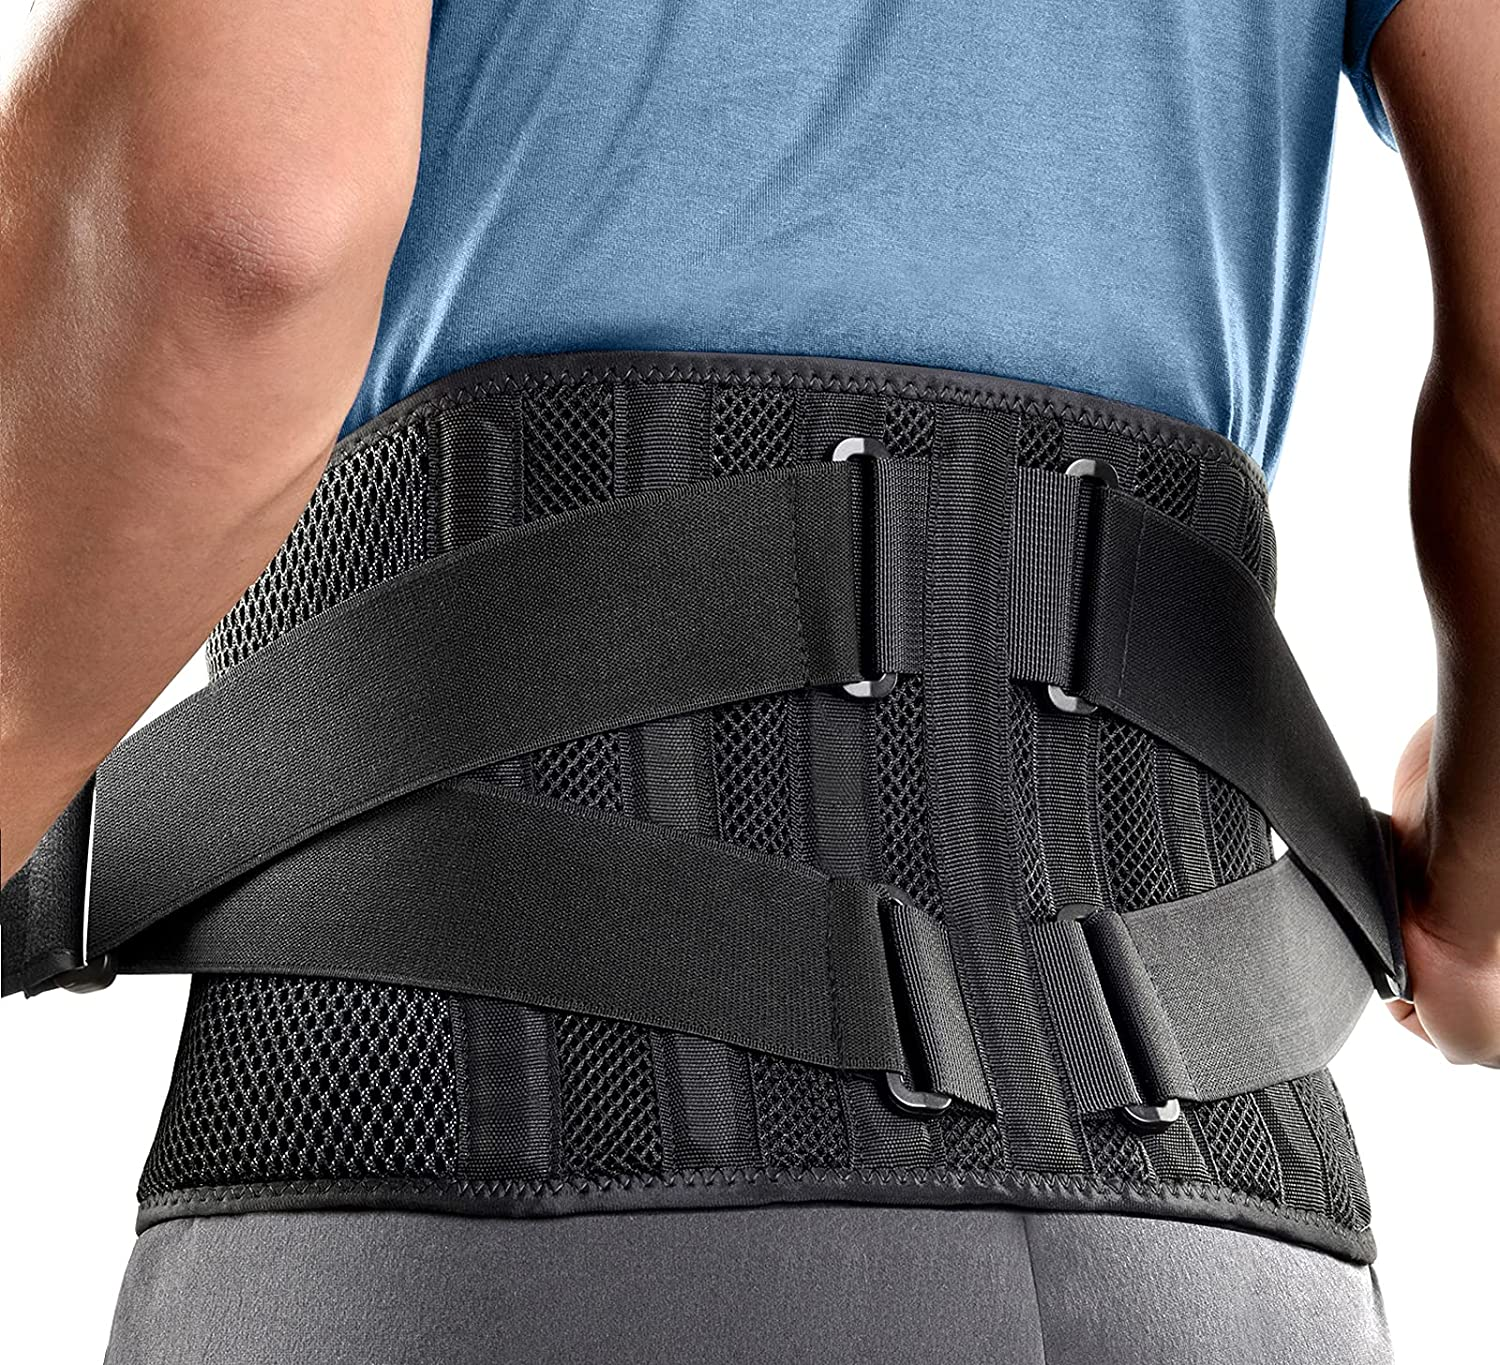 FREETOO Air Mesh Back Brace for Men Women Lower Back Pain Relief with 7 Stays, Adjustable Back Support Belt for Work, Anti-skid Lumbar Support for Sciatica Scoliosis (M(waist:36''-44''), Black): Industrial & Scientific